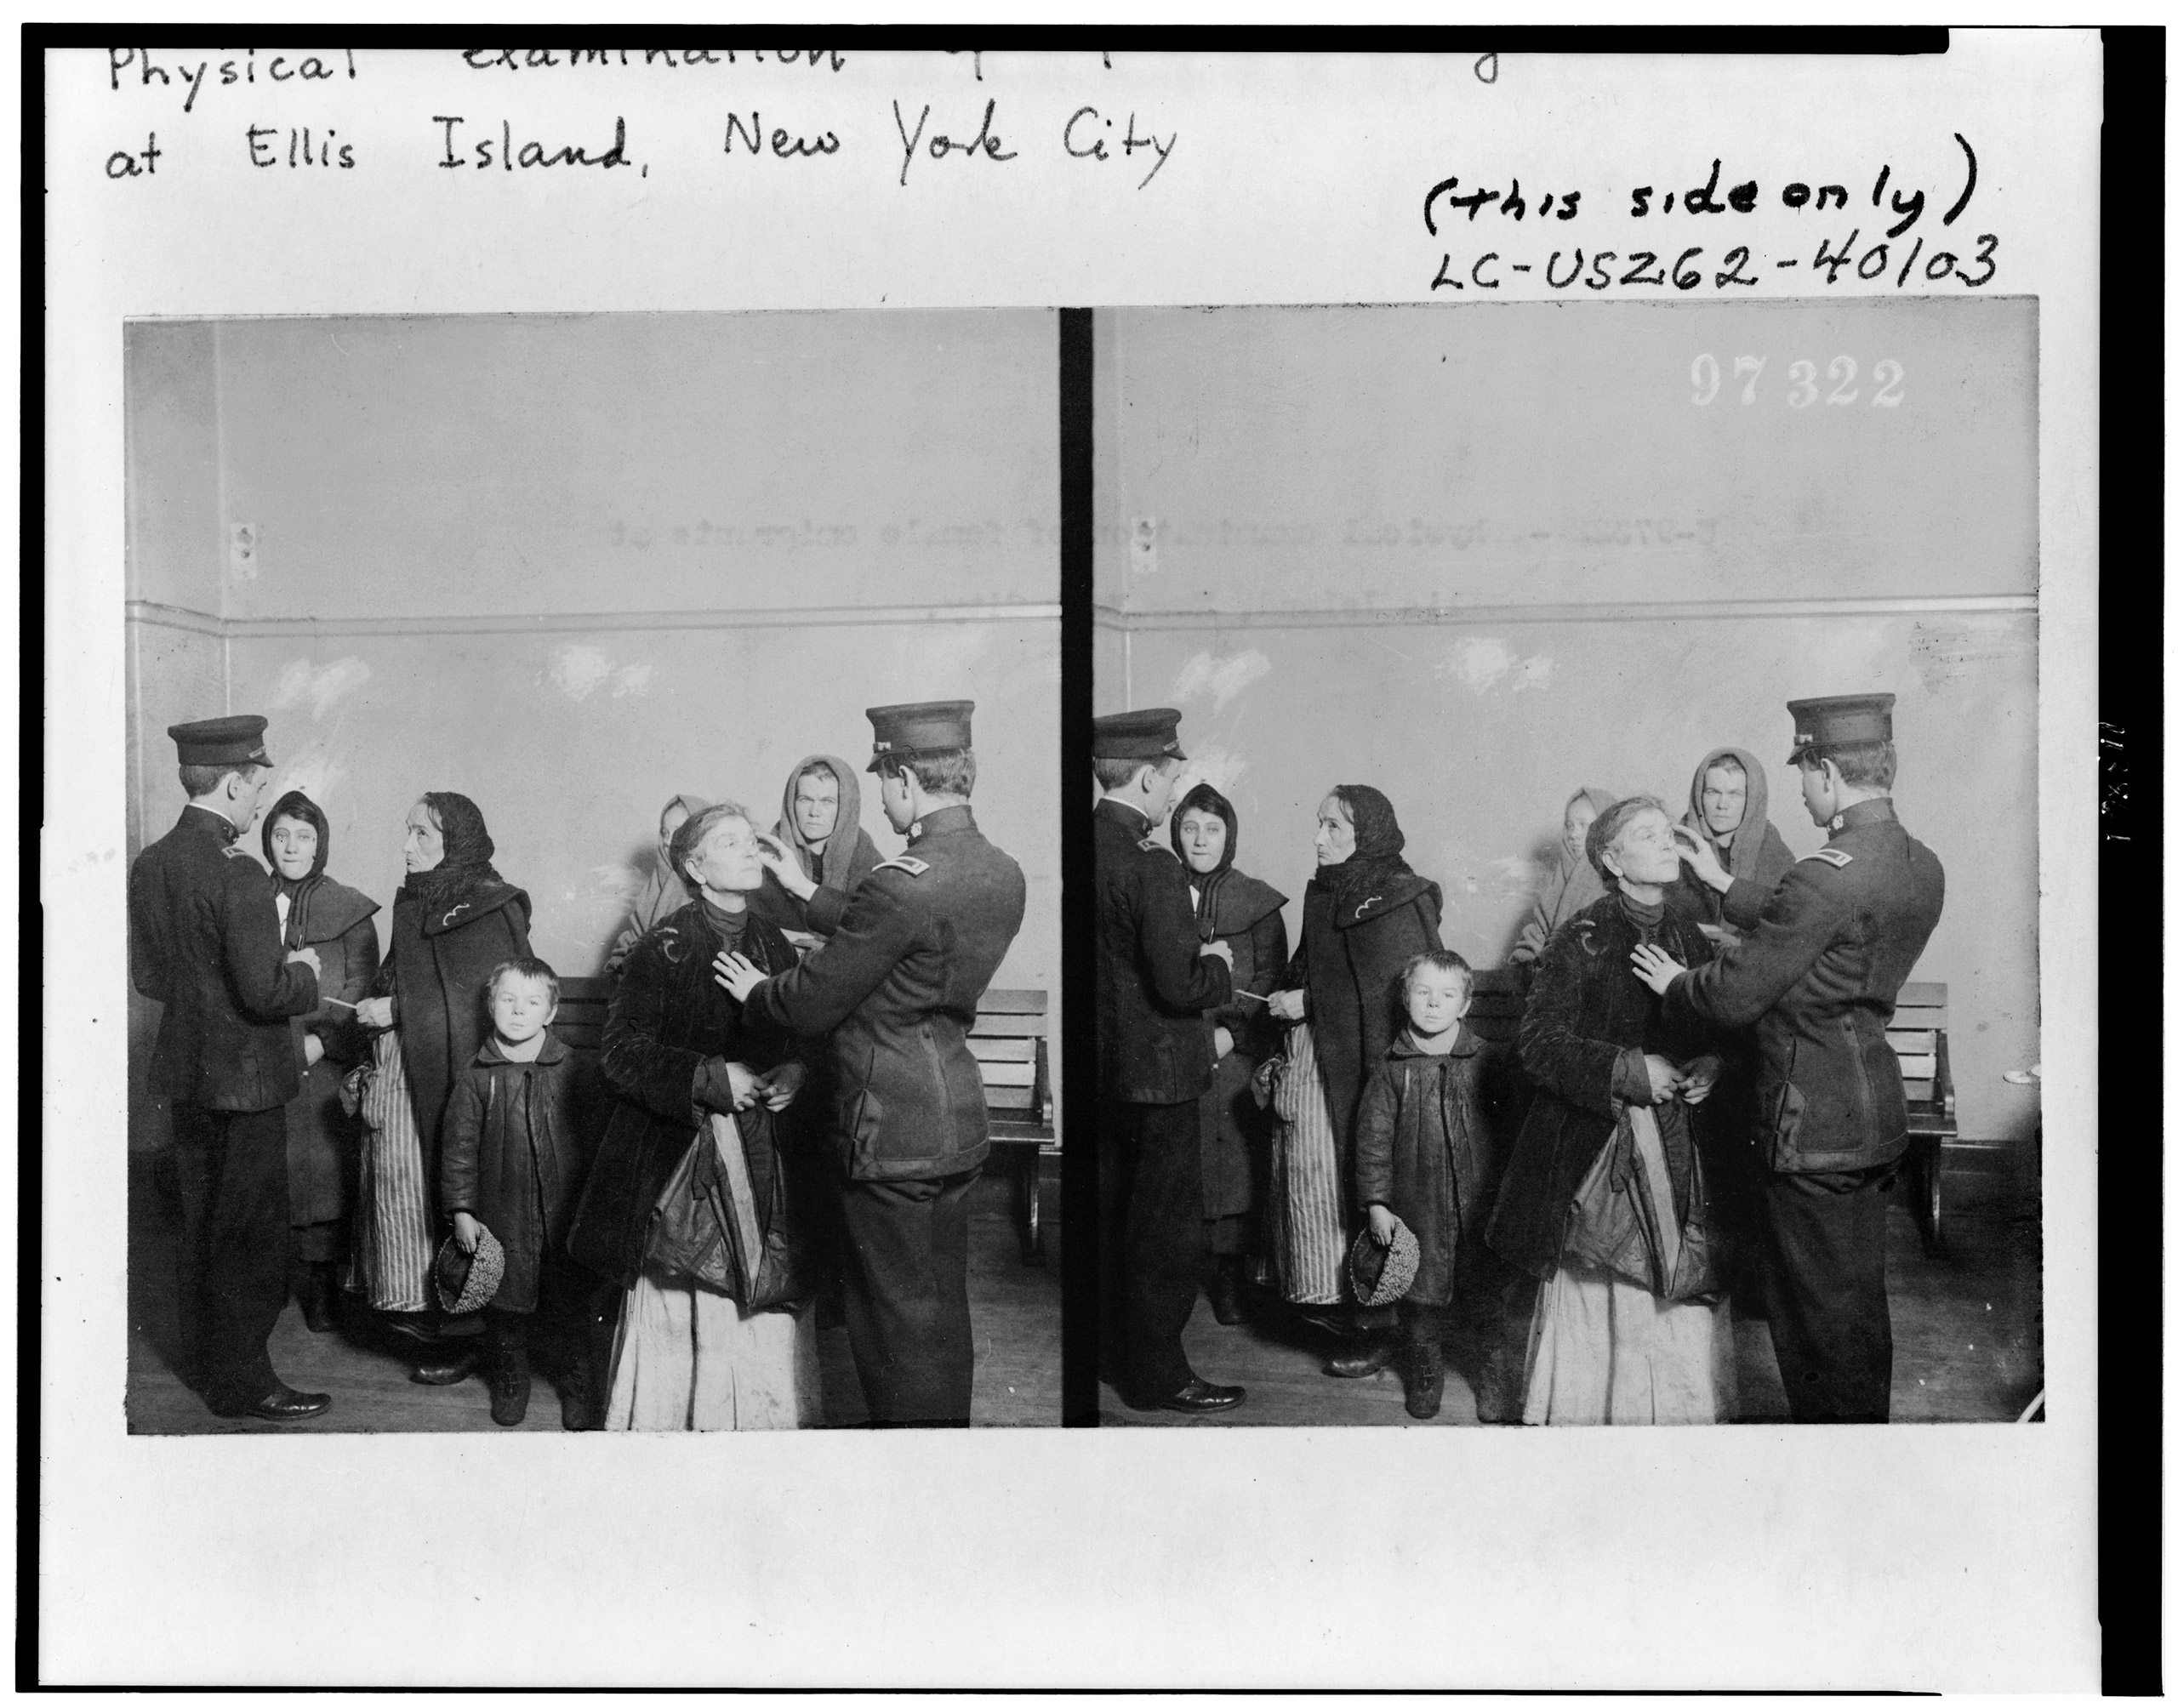 Physical examination of female immigrants at Ellis Island, New York City, circa 1911.